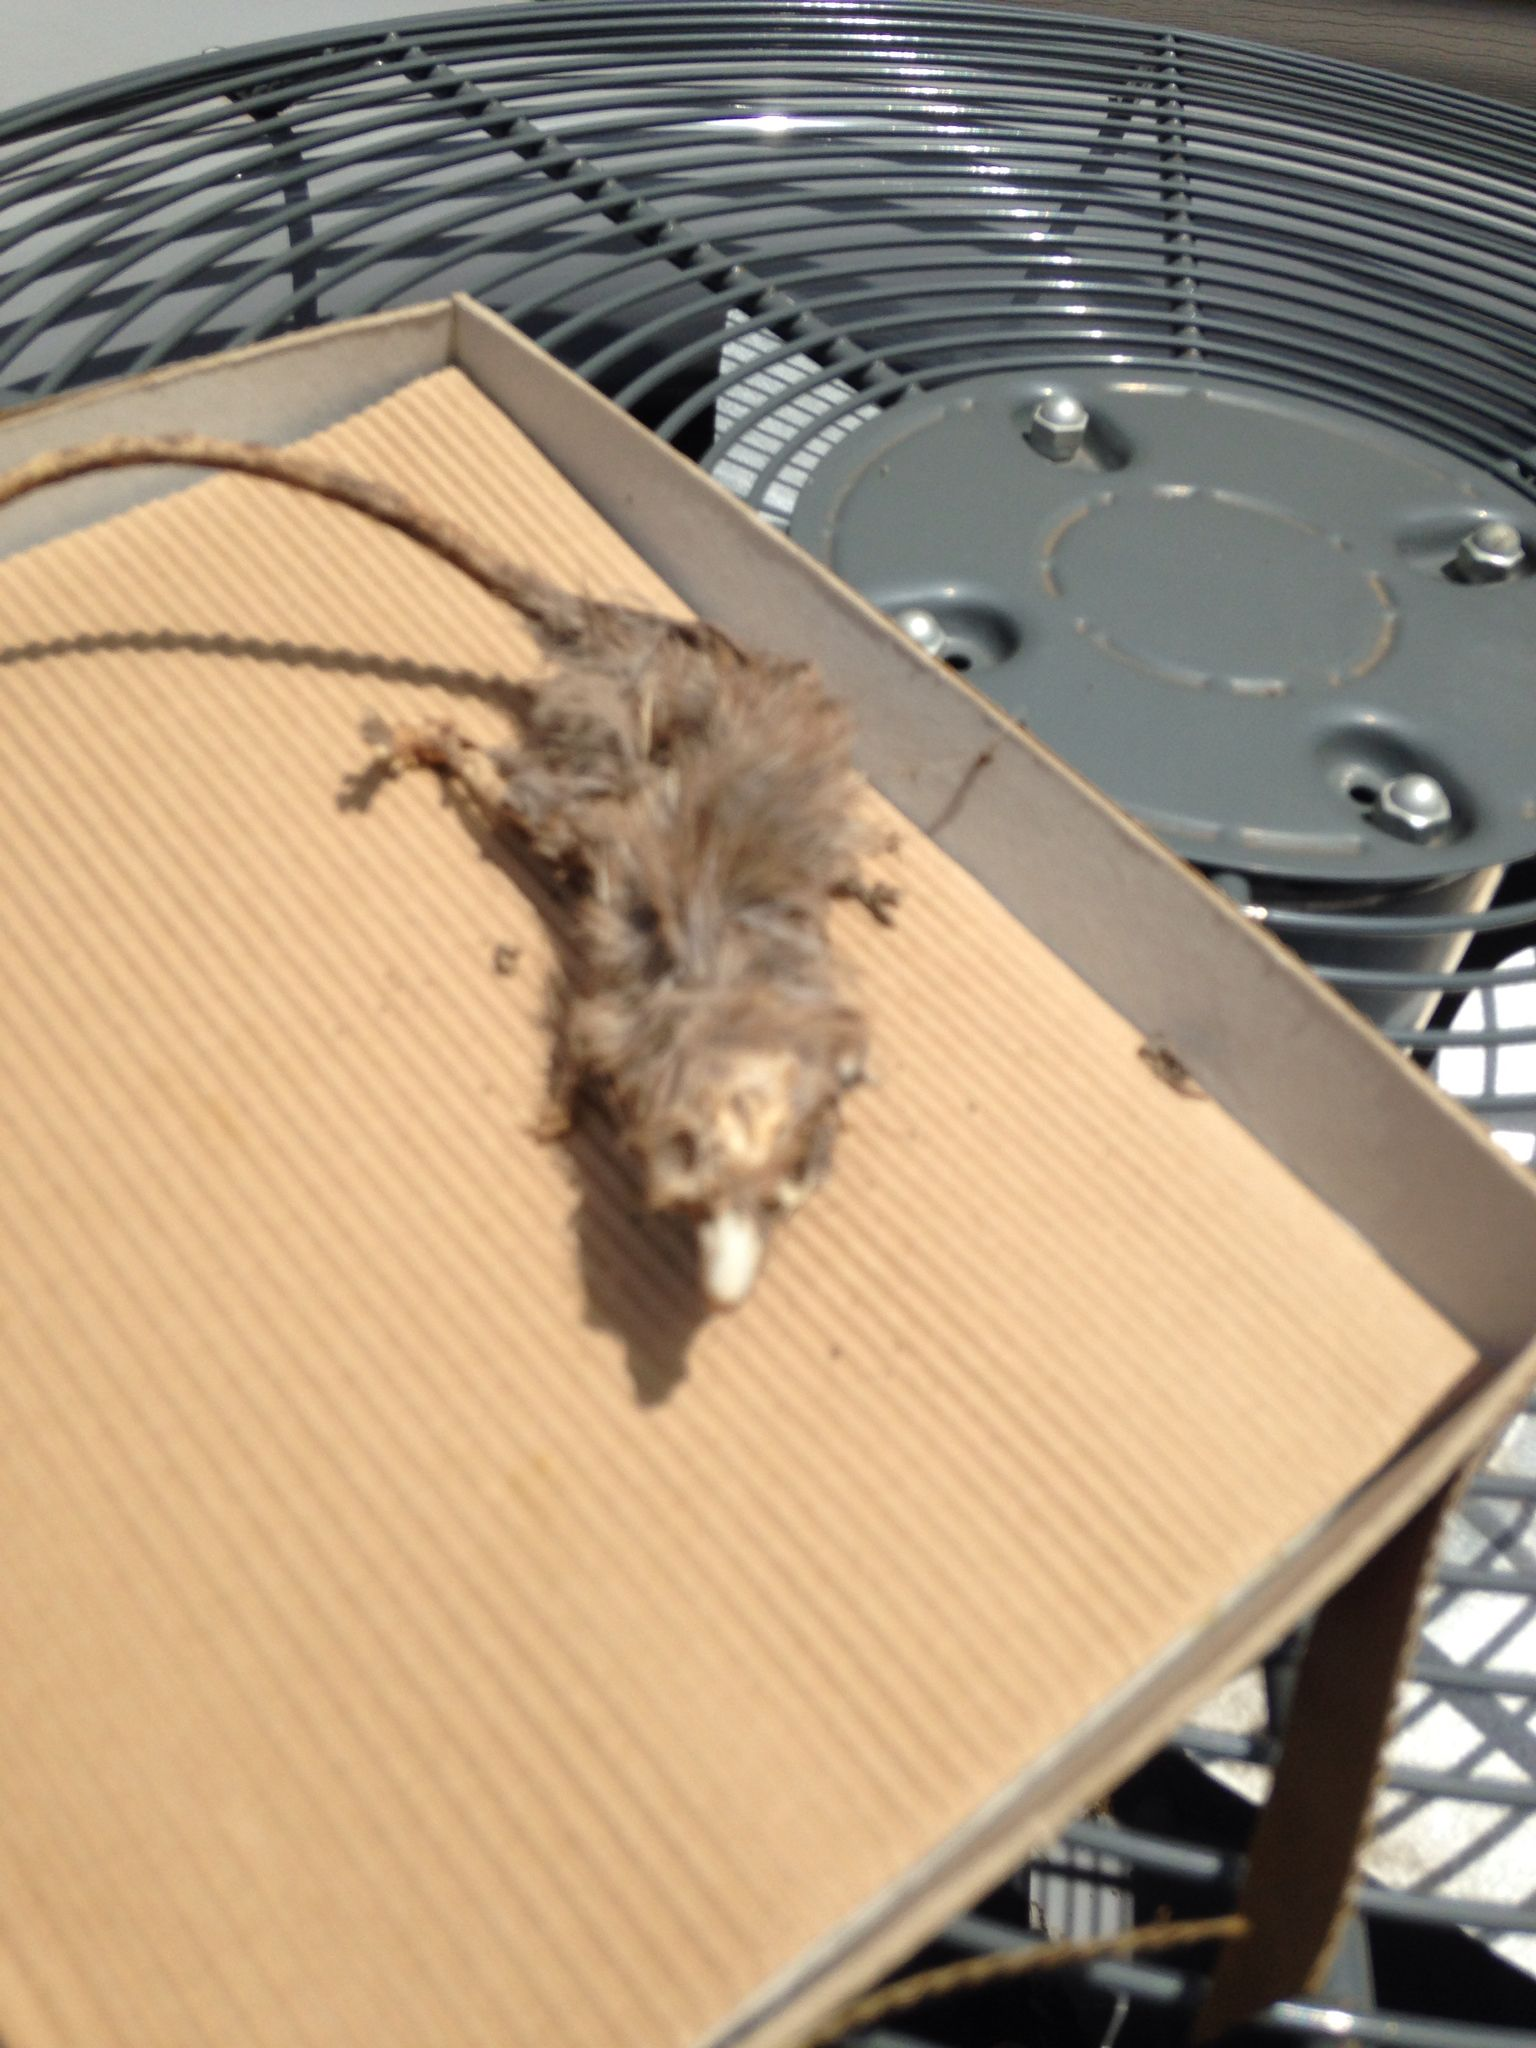 Another view of dead field rat